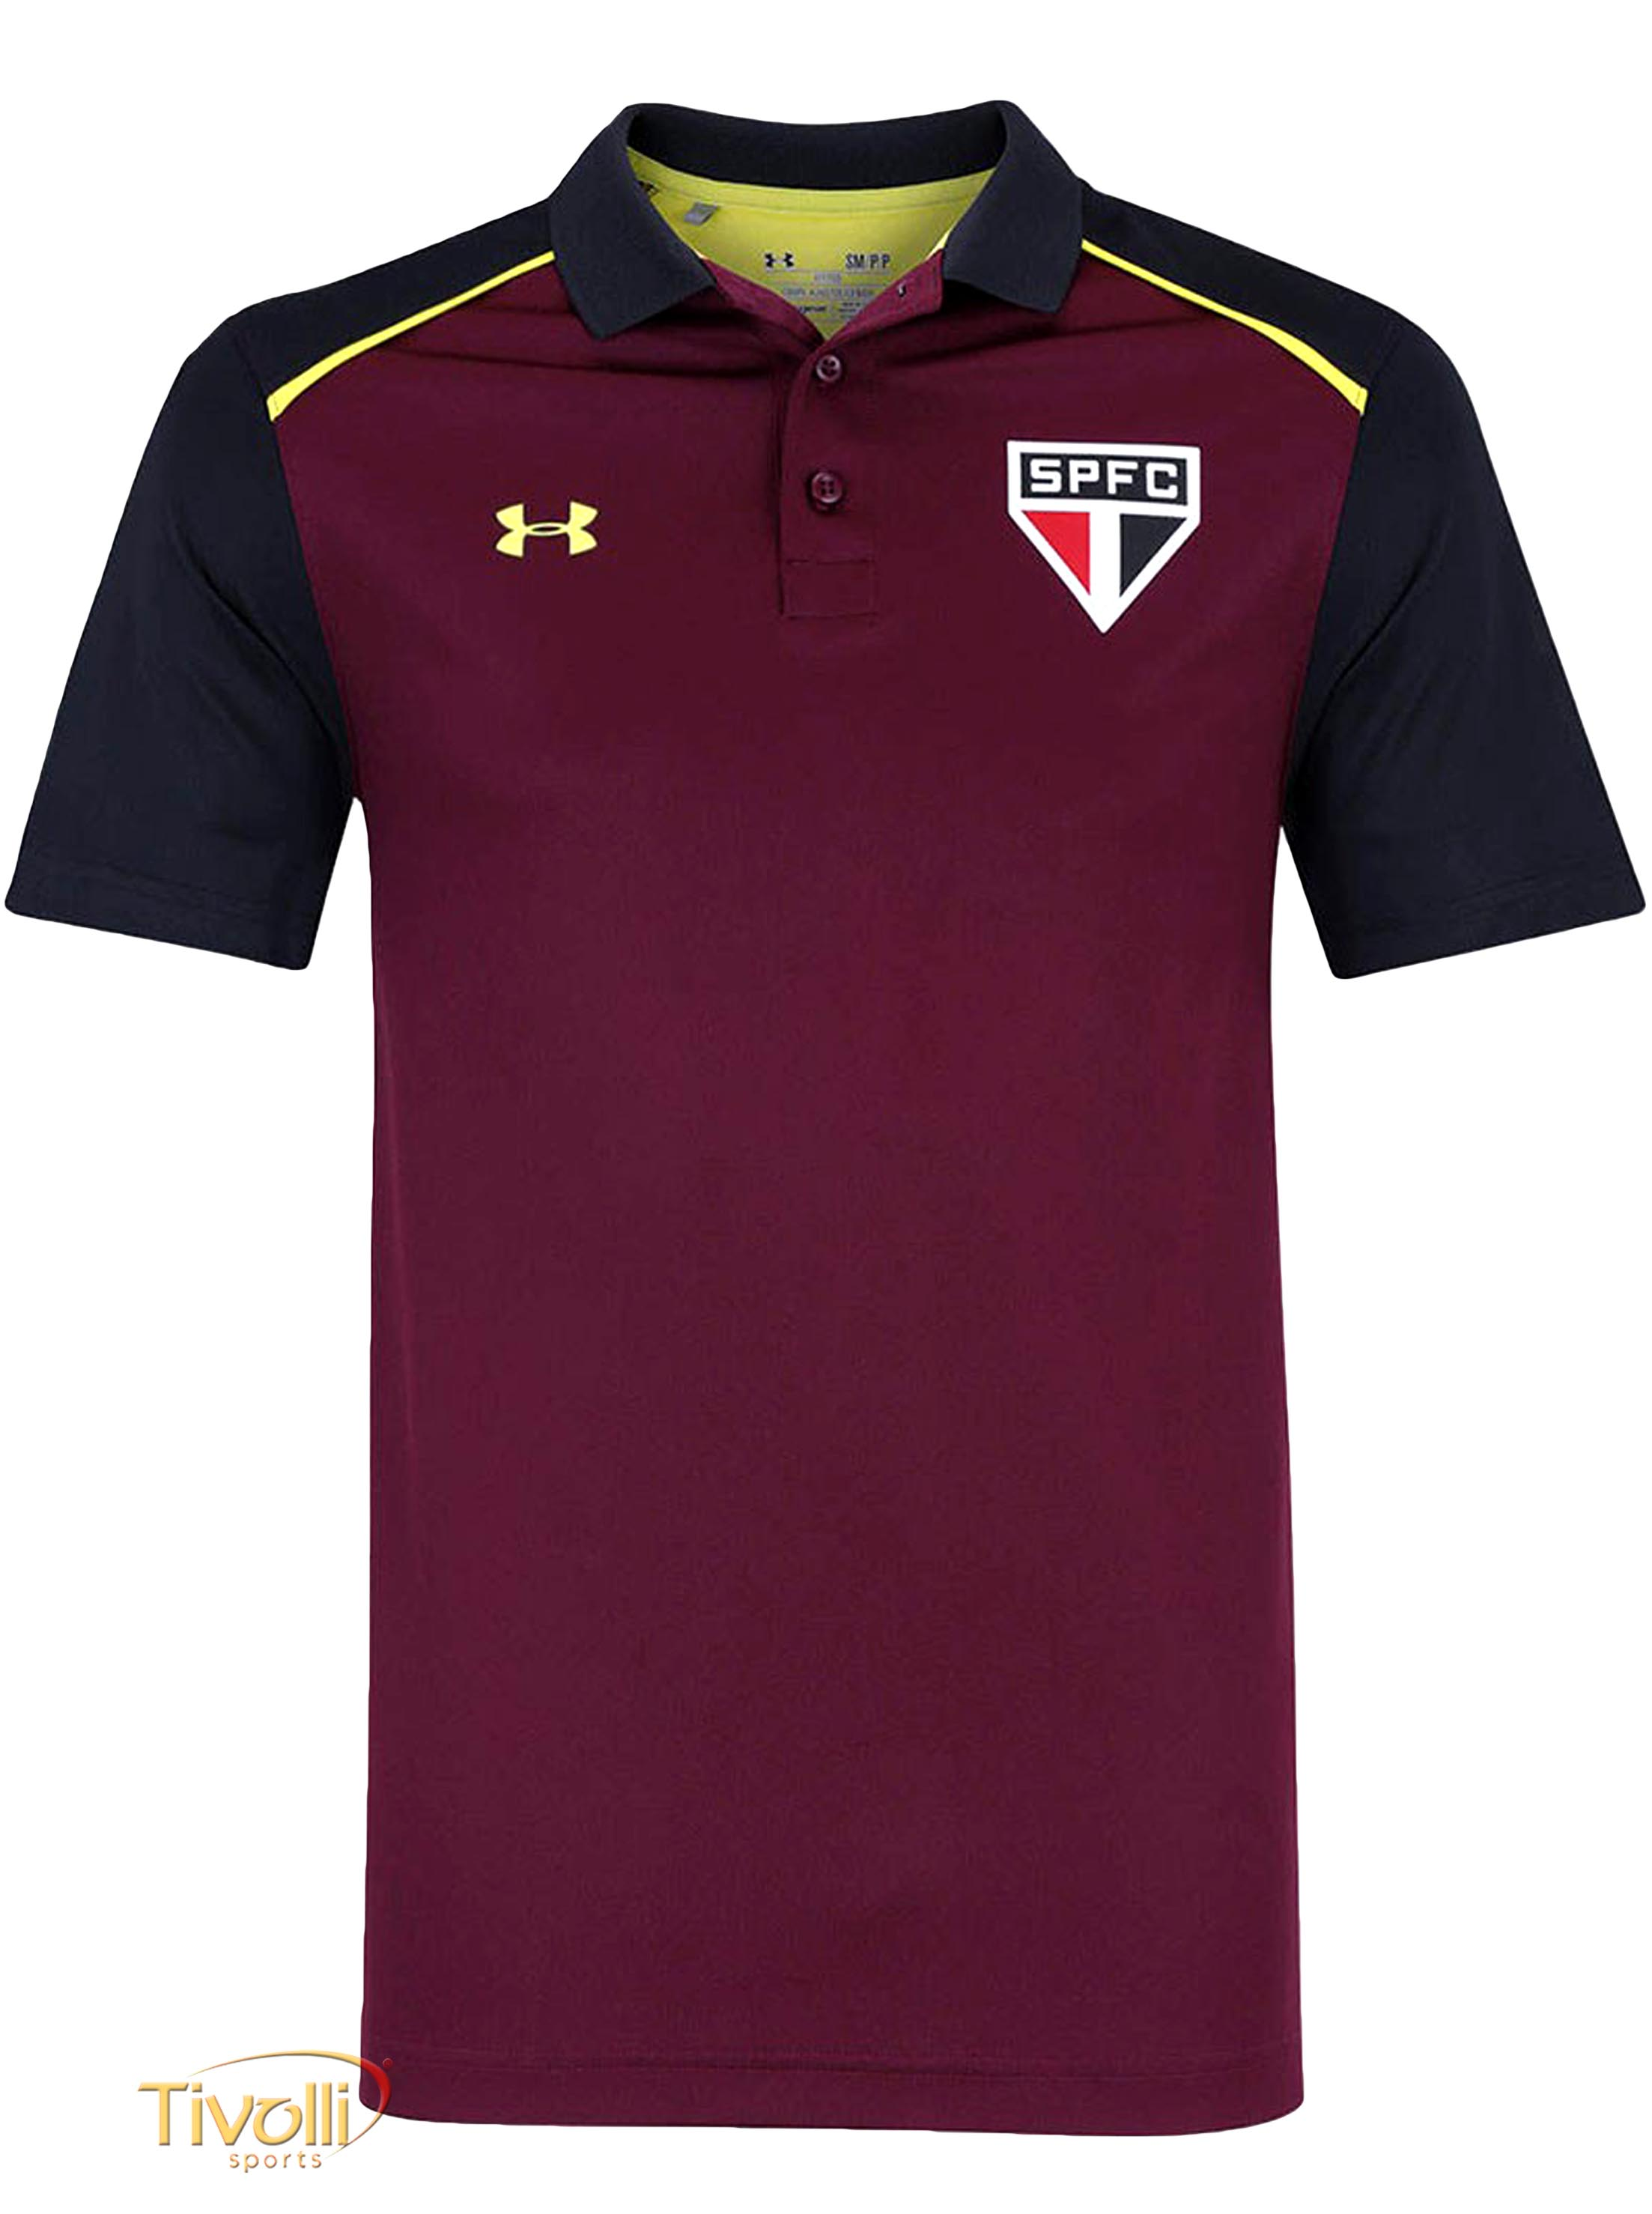 82239fb4d3180 Camisa Polo Under Armour São Paulo Core 17   Grafite e Bordô